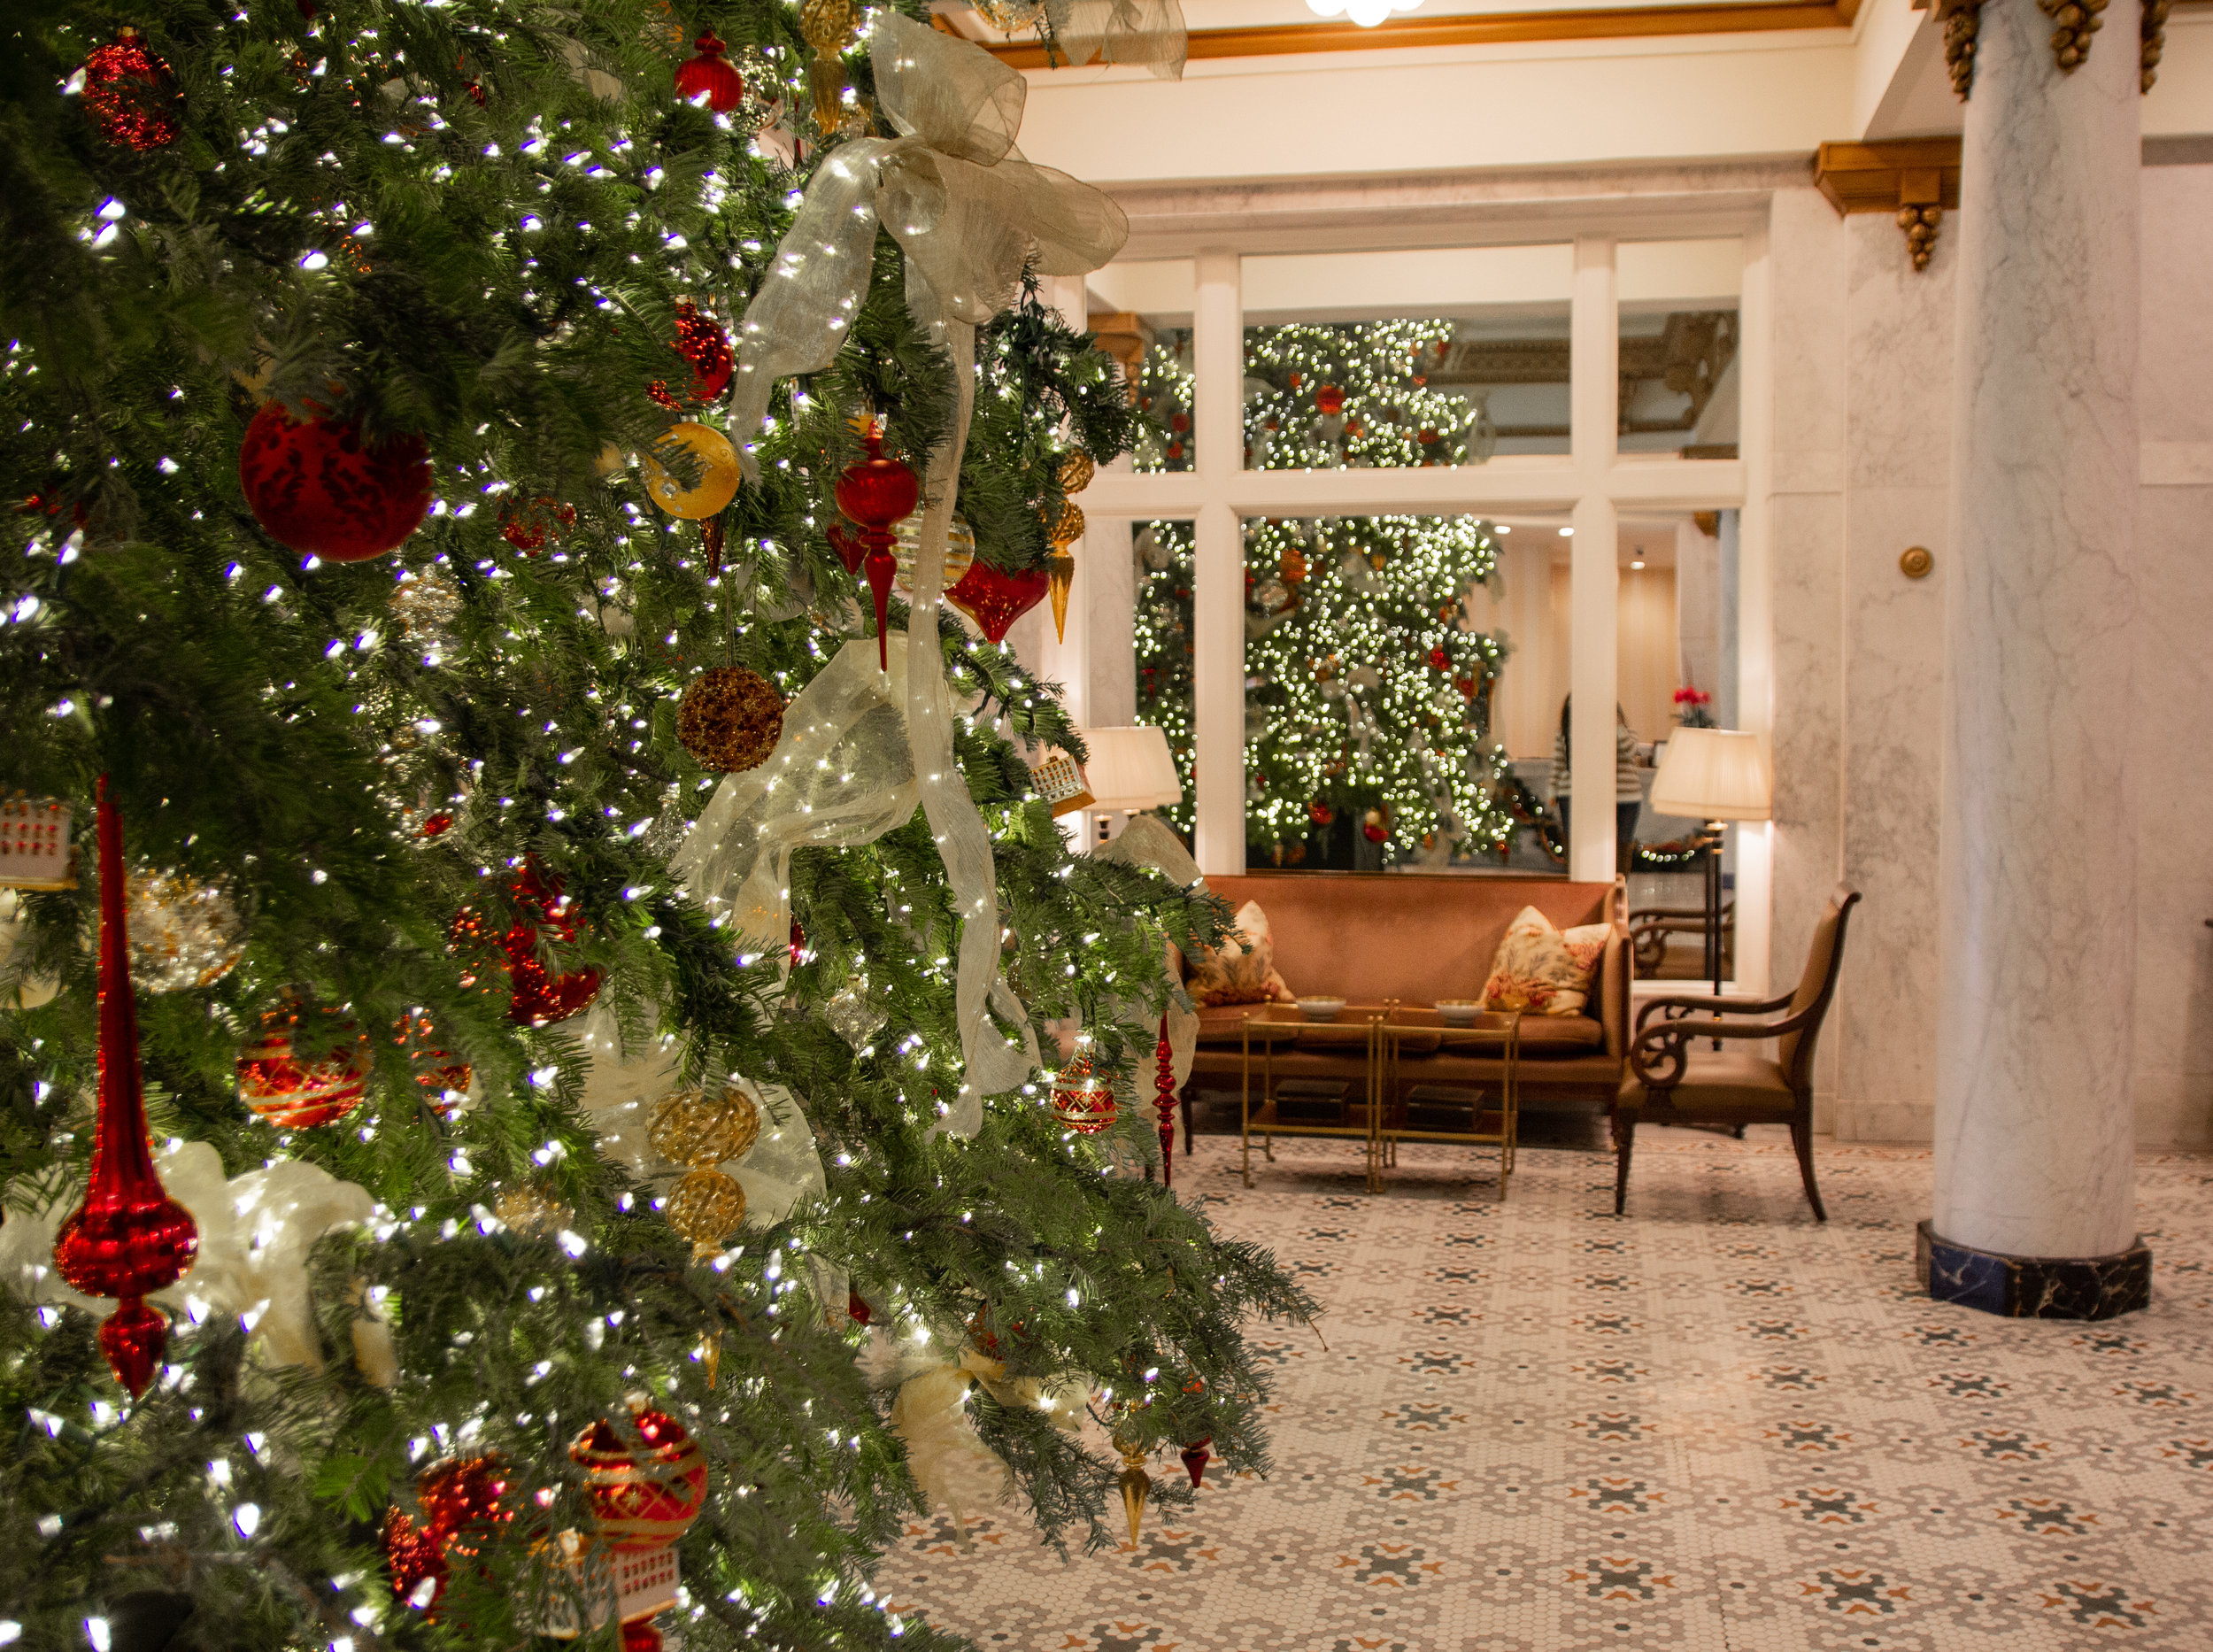 where to stay in little rock, arkansas, the capital hotel little rock, travel blogger, visit arkansas, little rock hotels, downtown, where to take christmas pictures in arkansas